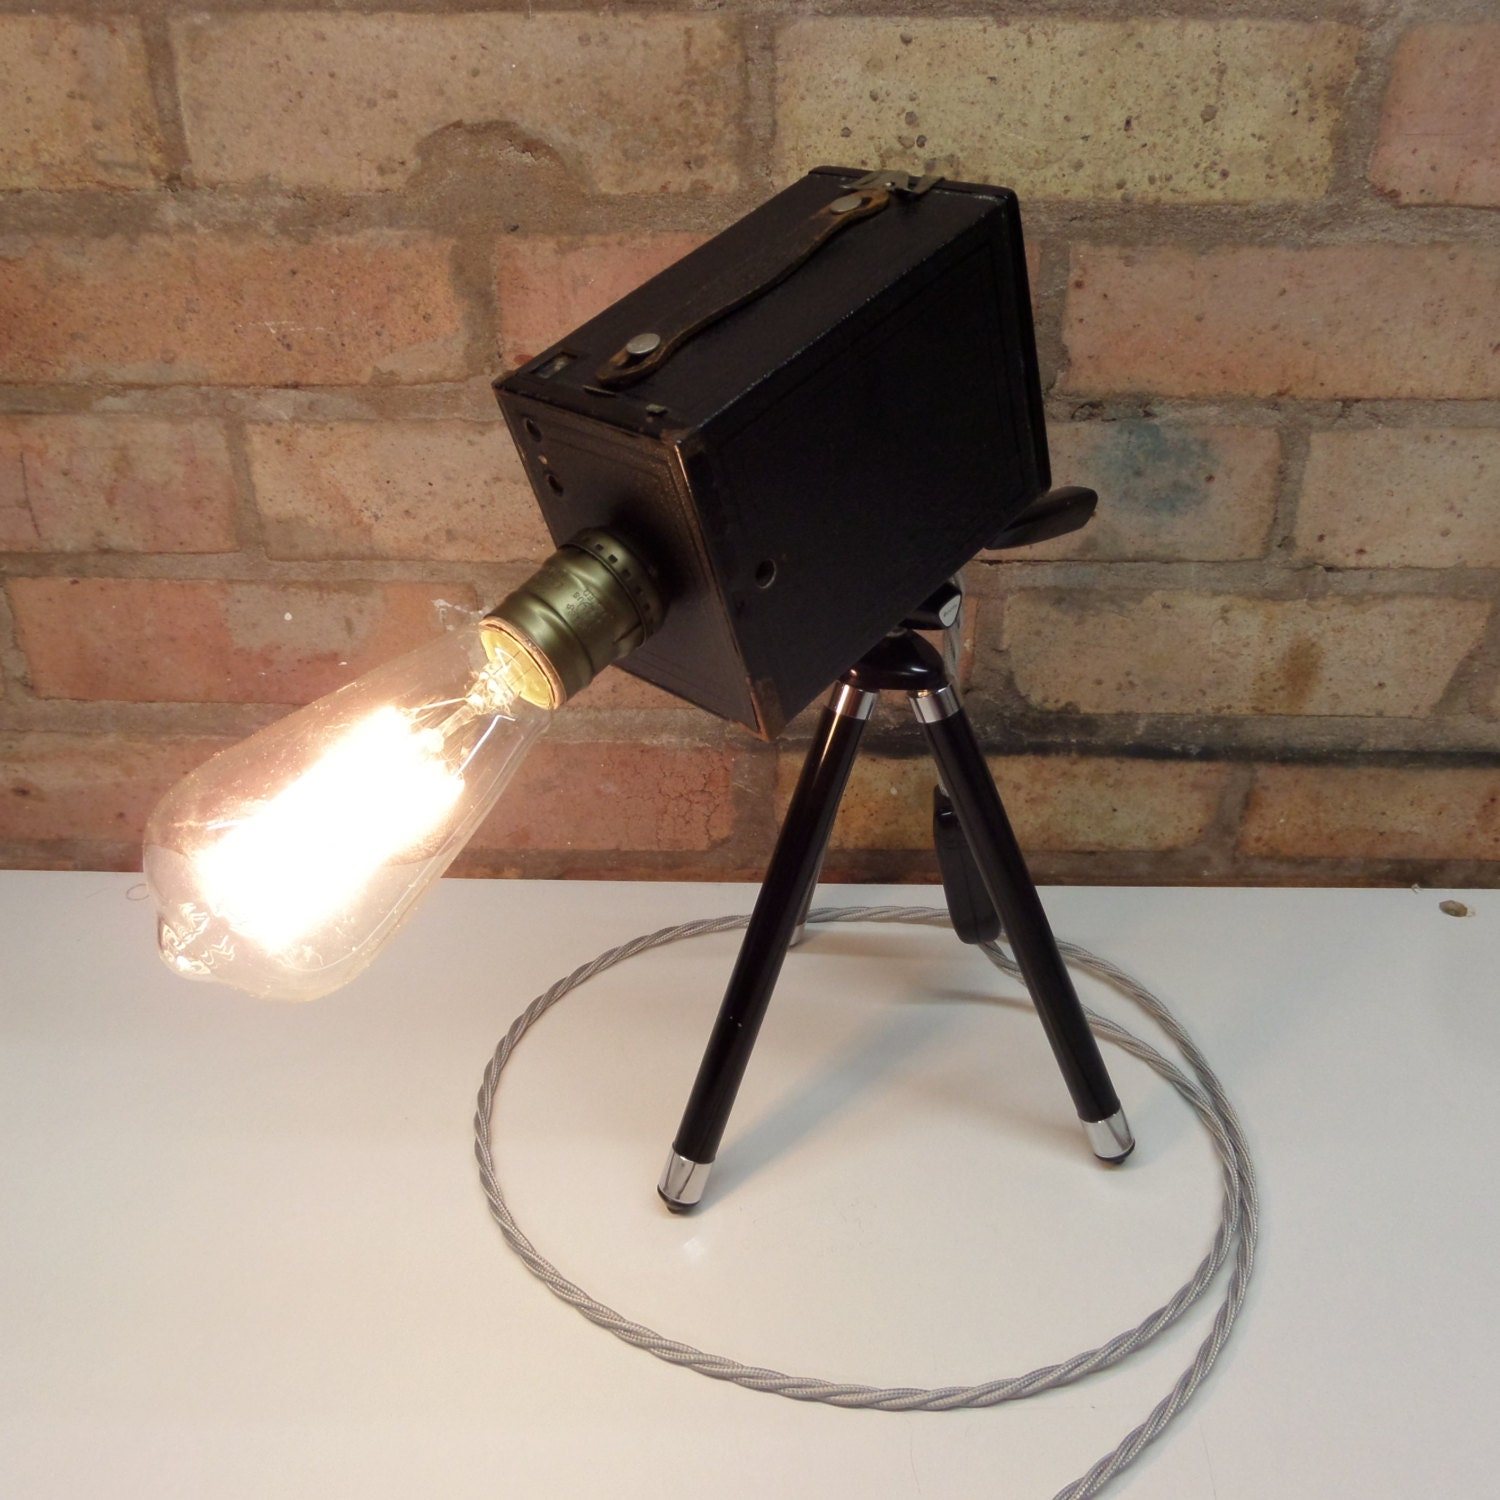 Vintage retro kodak brownie camera. Deskfloor Lamp with Edison bulb with tripod  christmas delivery if ordered by 2pm on the 23rd december